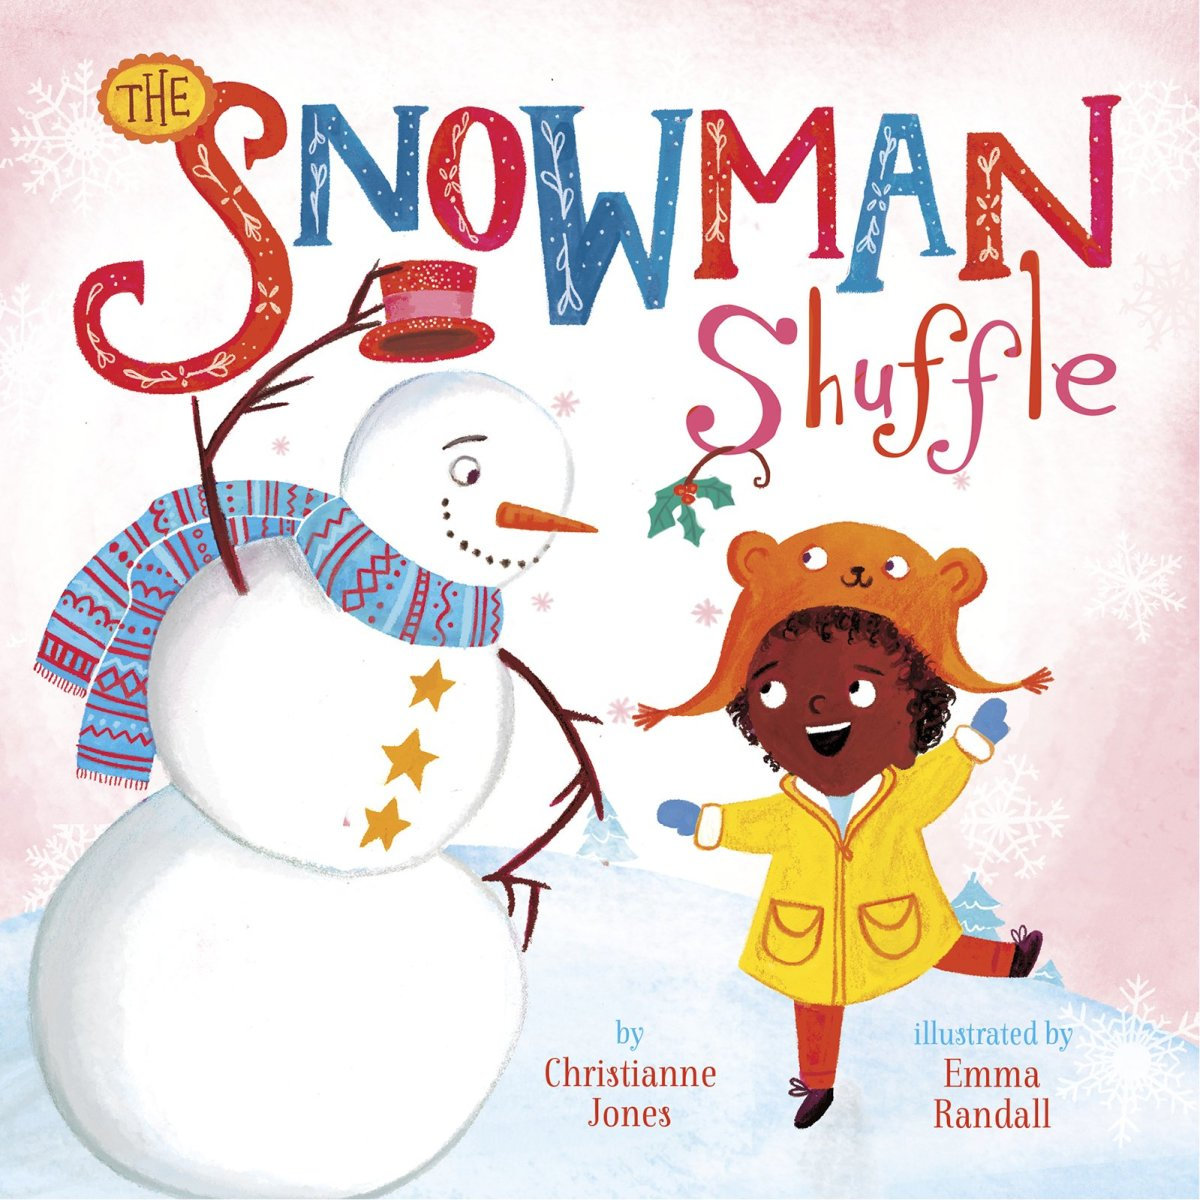 The Snowman Shuffle by Christianne Jones